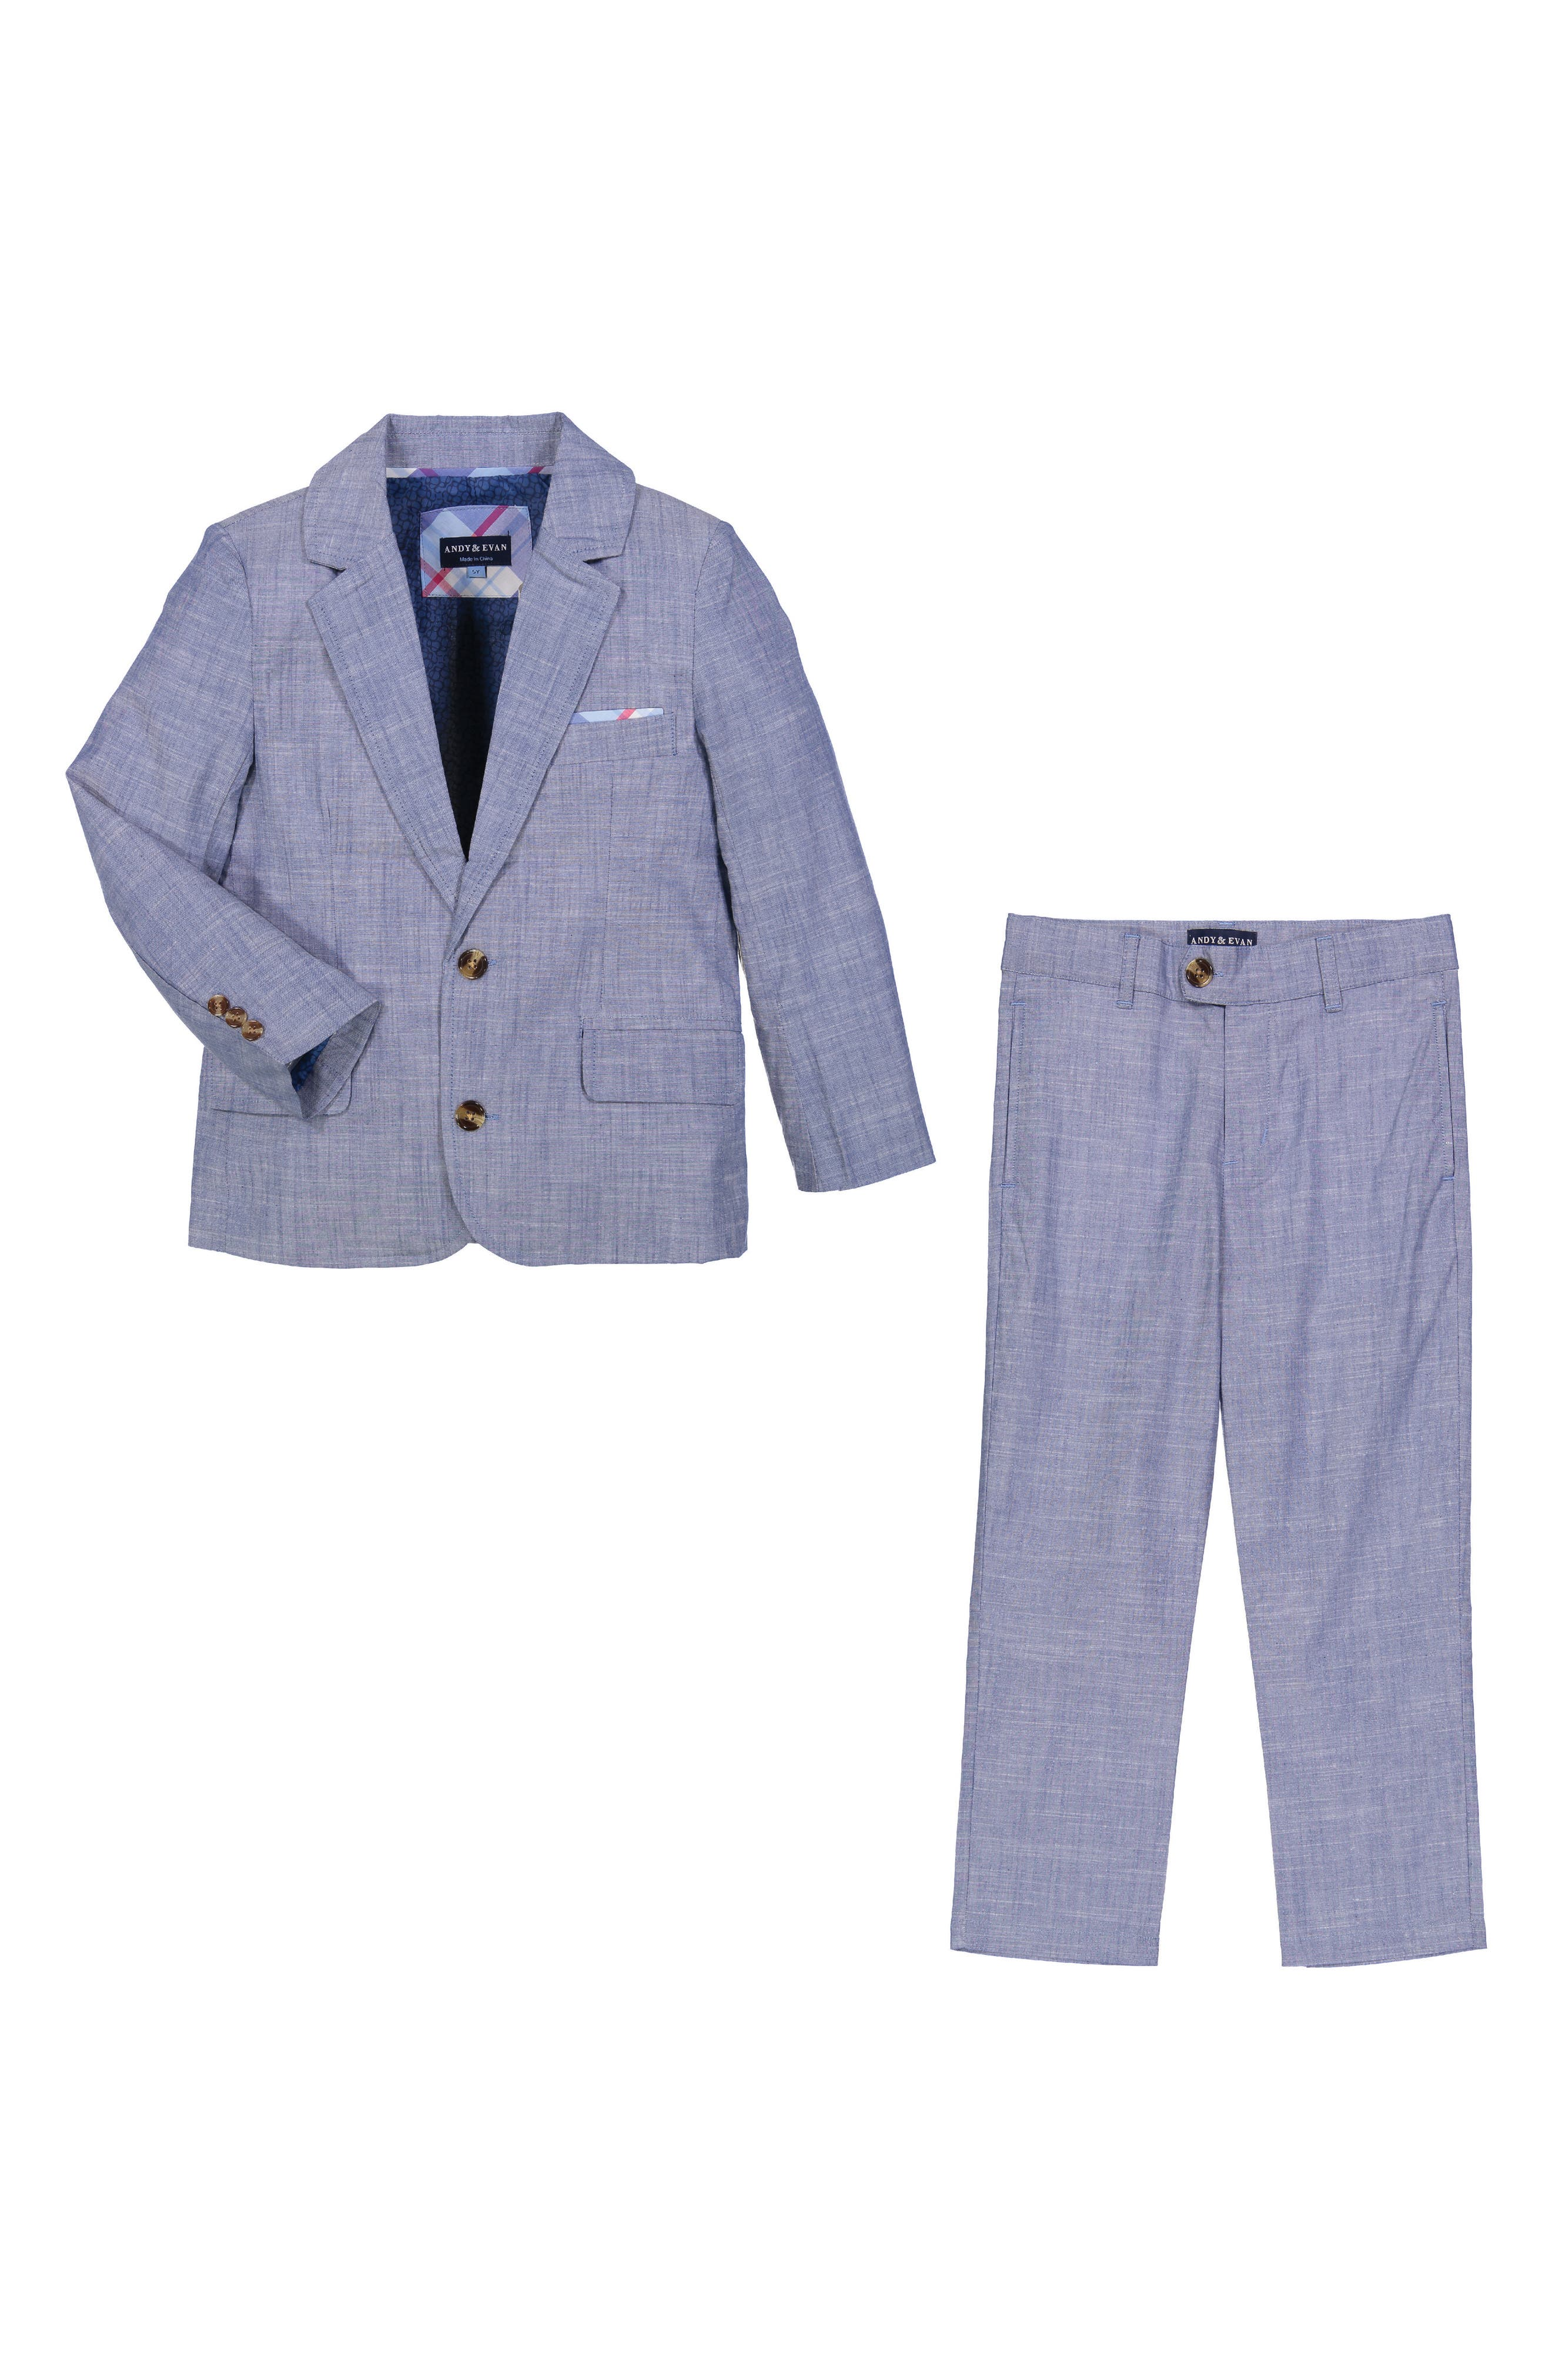 Andy & Evan Chambray Suit Set (Baby Boys)